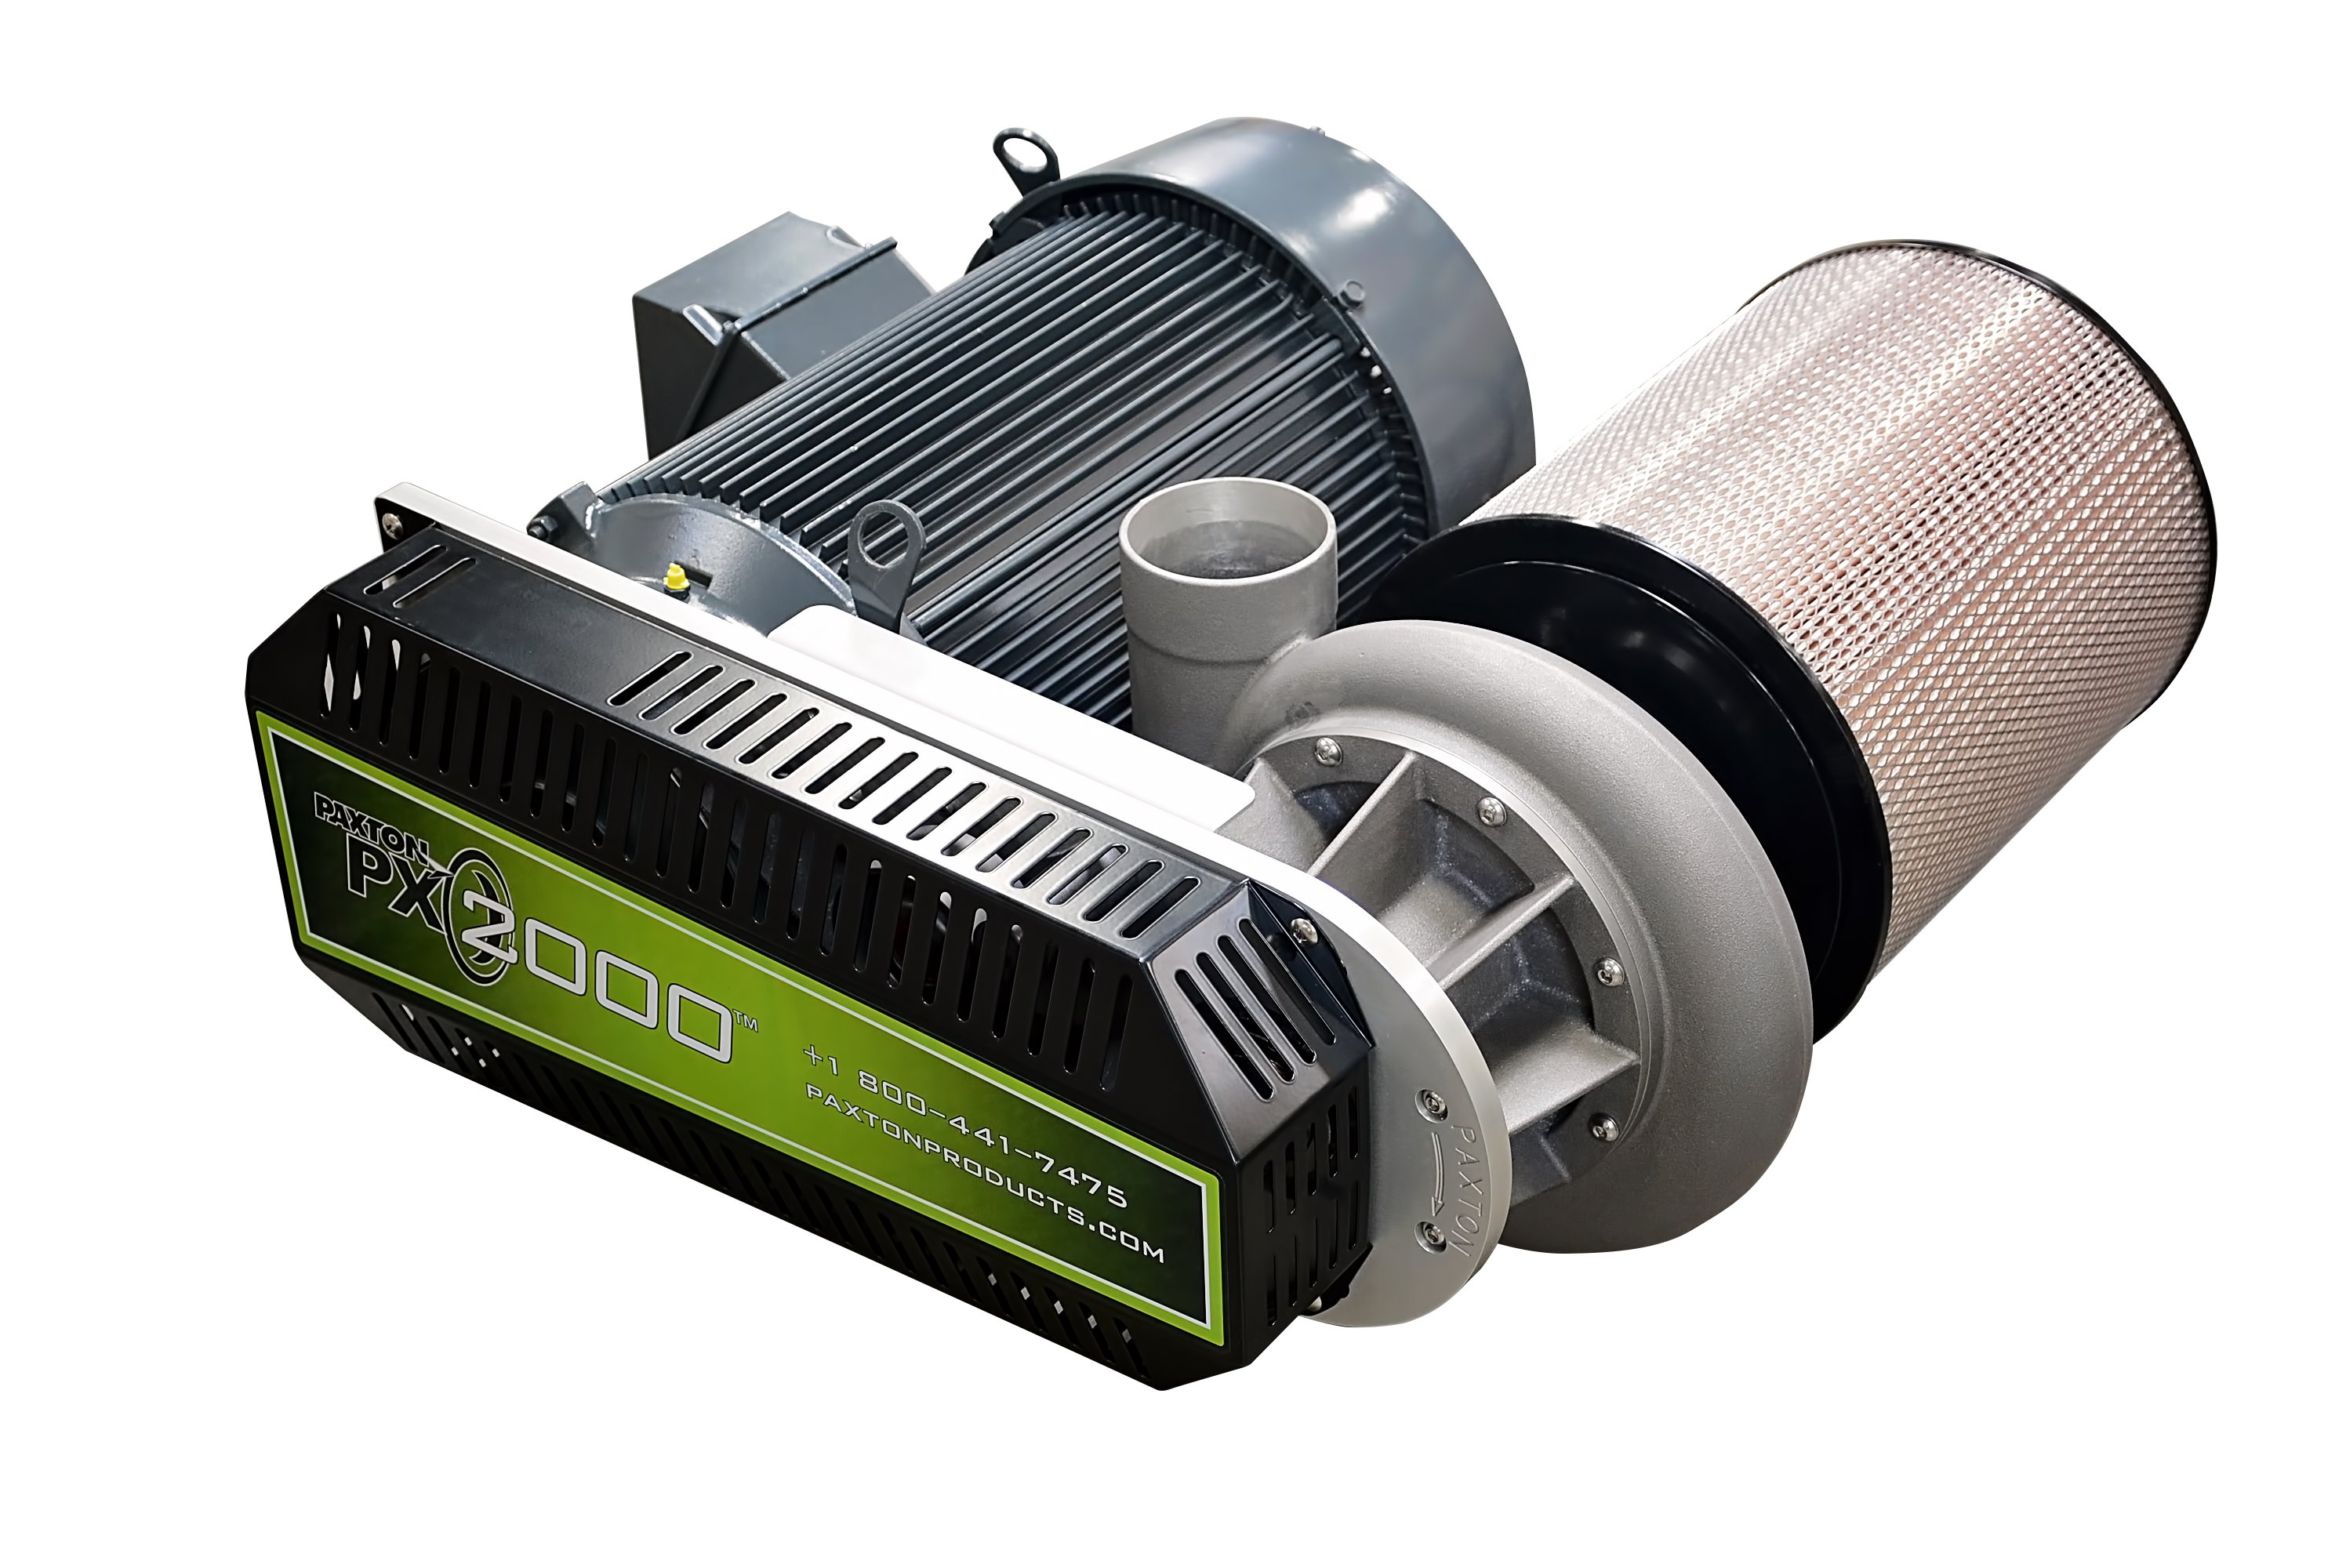 Air Blower Product : Centrifugal air blowers px series itw paxton